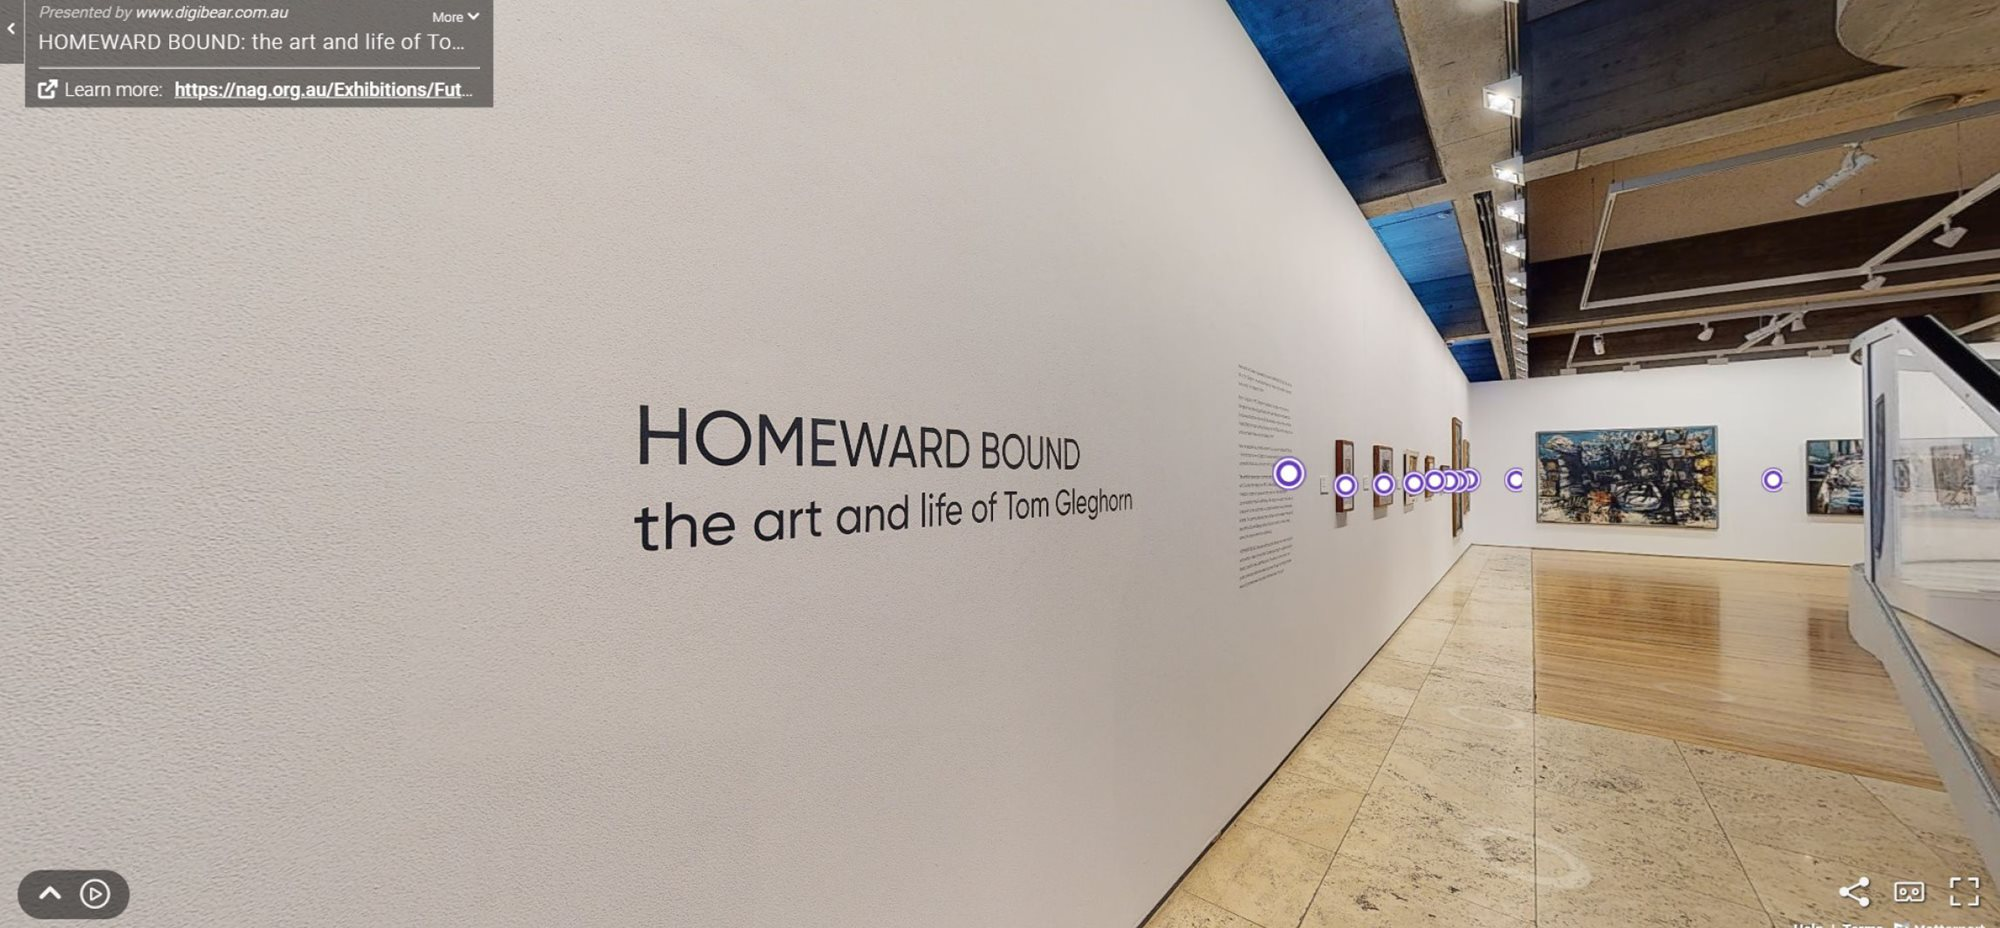 HOMEWARD BOUND Virtual Tour